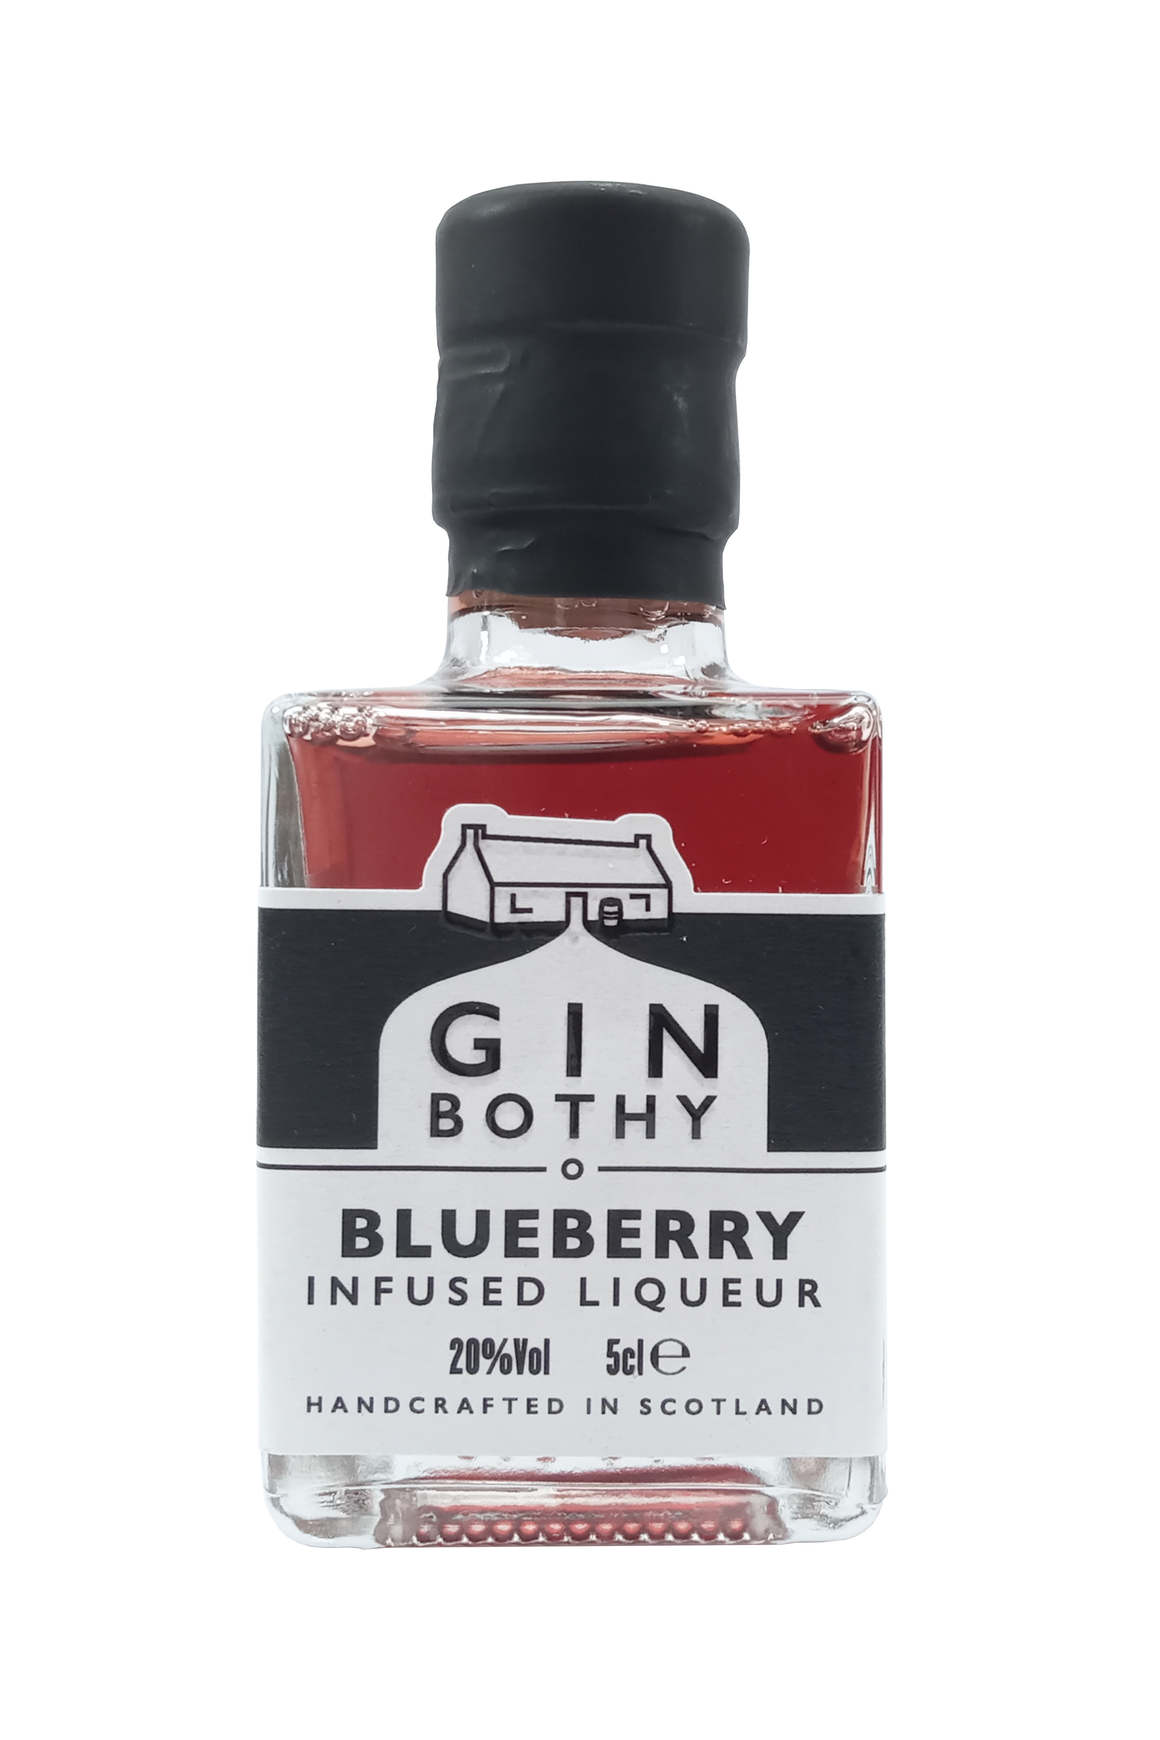 Gin Bothy Blueberry gin minature 5cl 20% abv